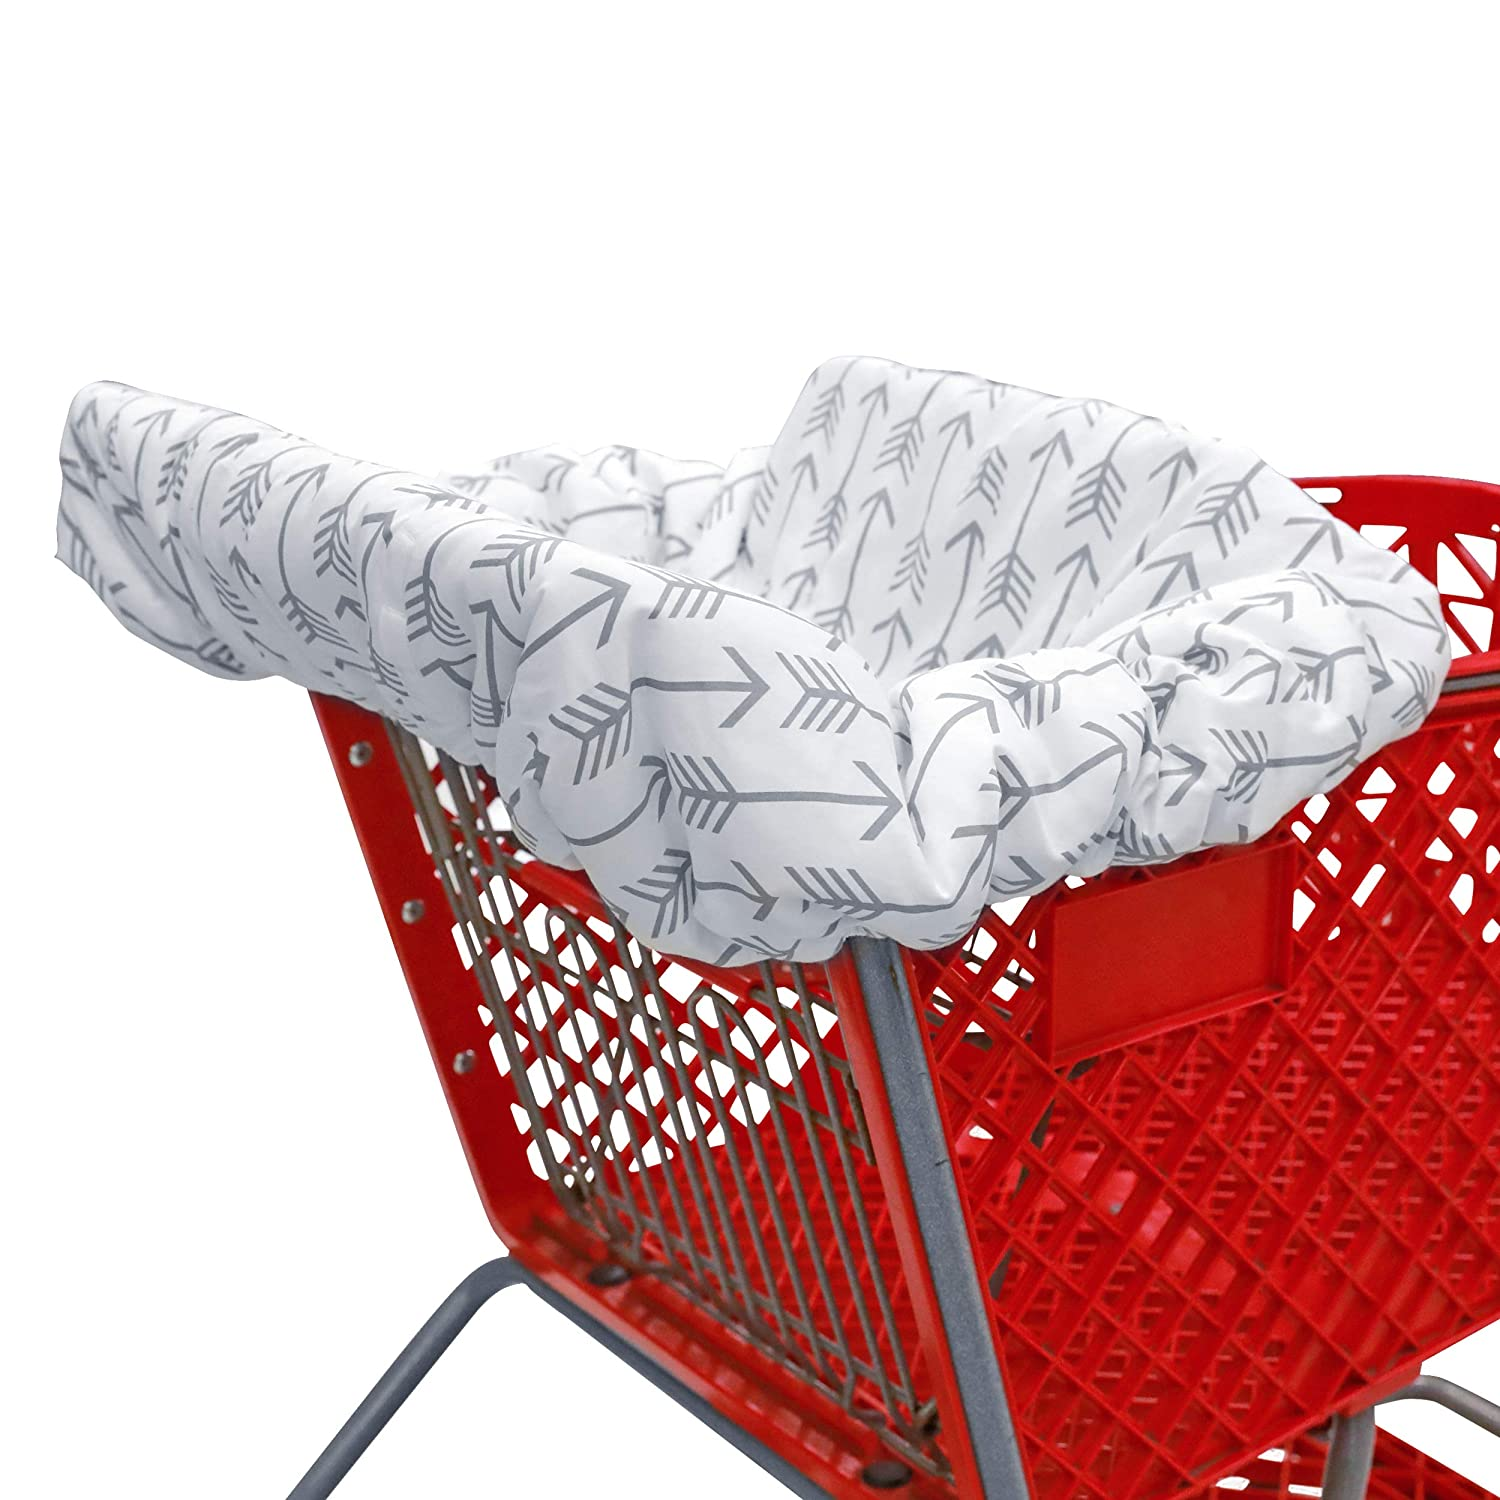 Shopping cart Covers for Baby | High Chair and Grocery Cover for Babies | Infants |Toddlers Trolley Seat for Boys and Girls (Gray Arrows)